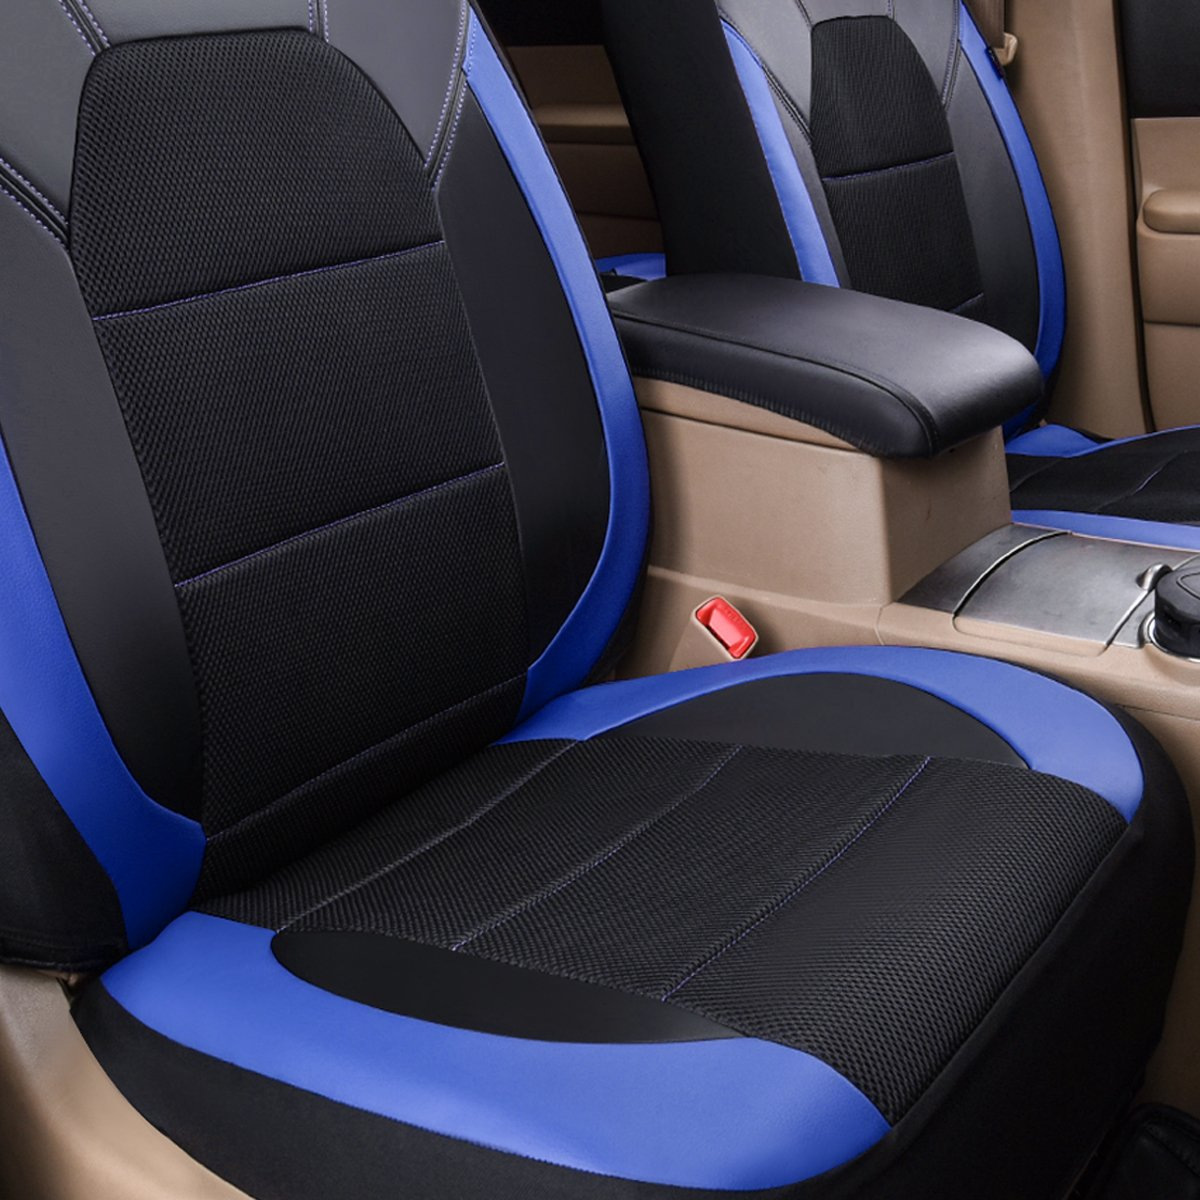 for Sedans 11PC, Black and Grey Trunkcs,Suvs CAR PASS Leather and Mesh Universal Car Seat Covers,Airbag Compatible